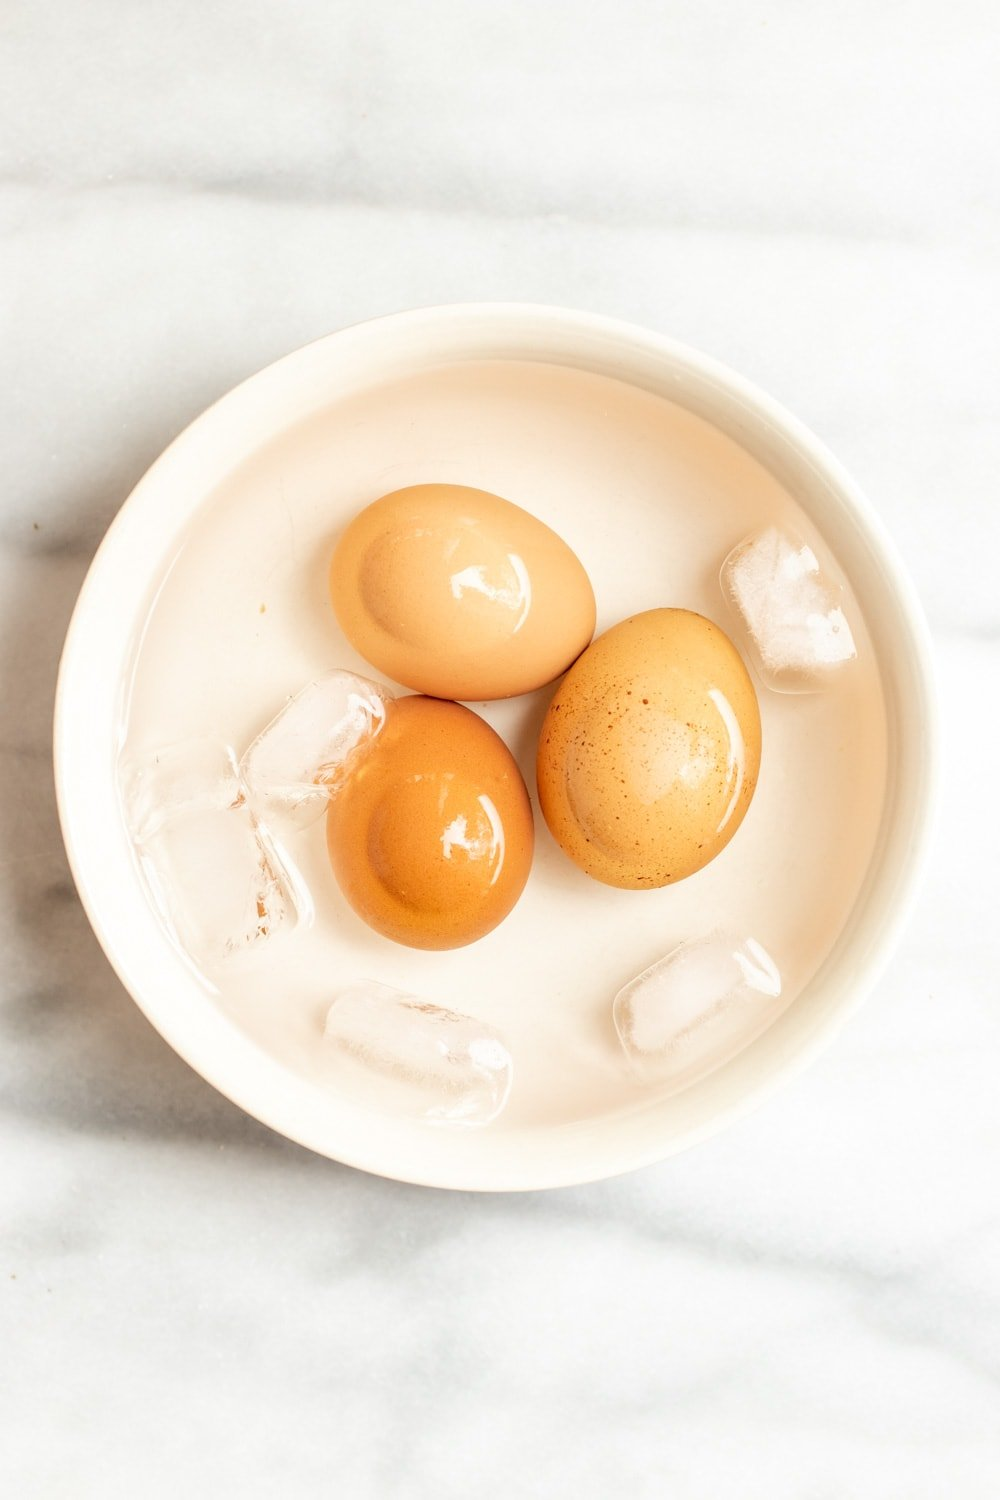 Three eggs in a bowl of ice water.